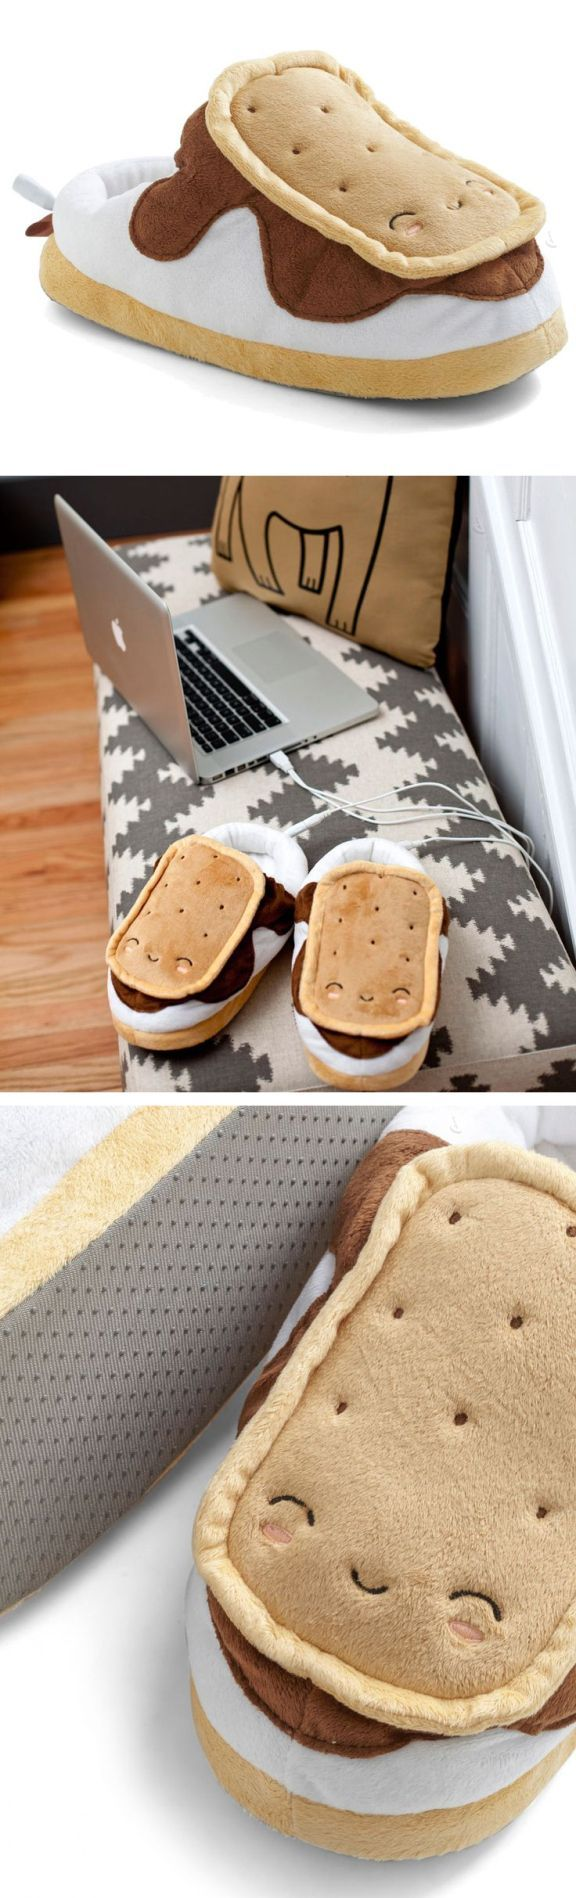 Cute Slippers that warms up using USB